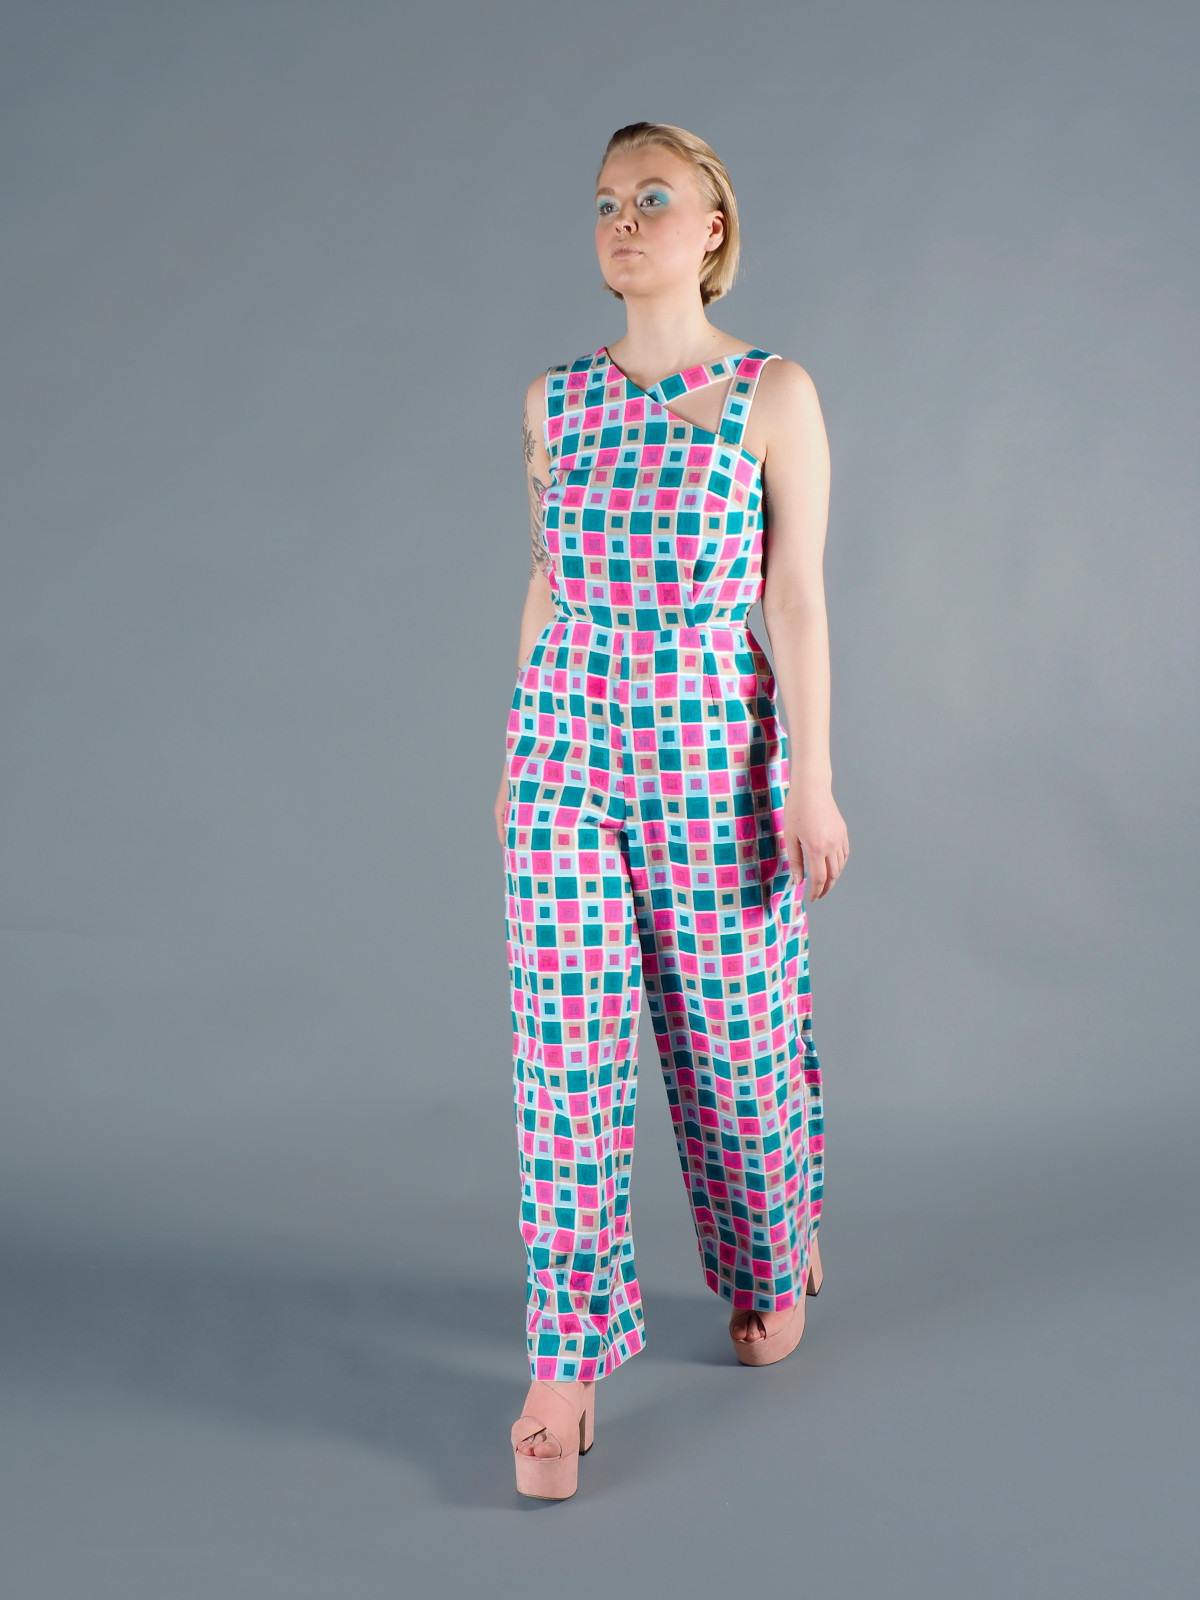 Jumpsuit and Print Design